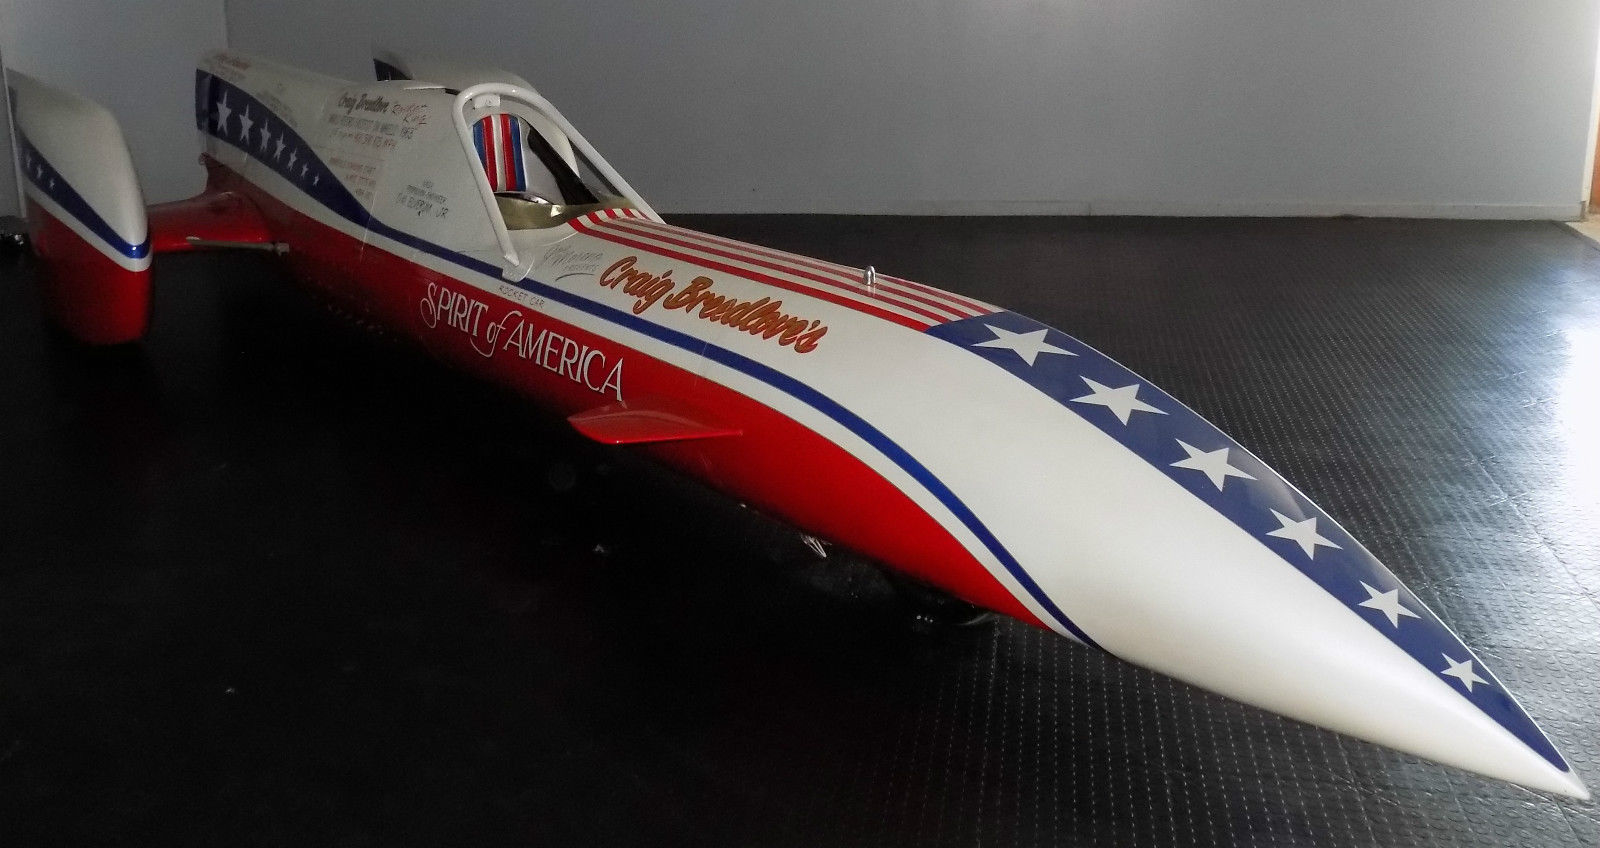 One of Craig Breedlove's Rocket Cars is Up for Sale on eBay